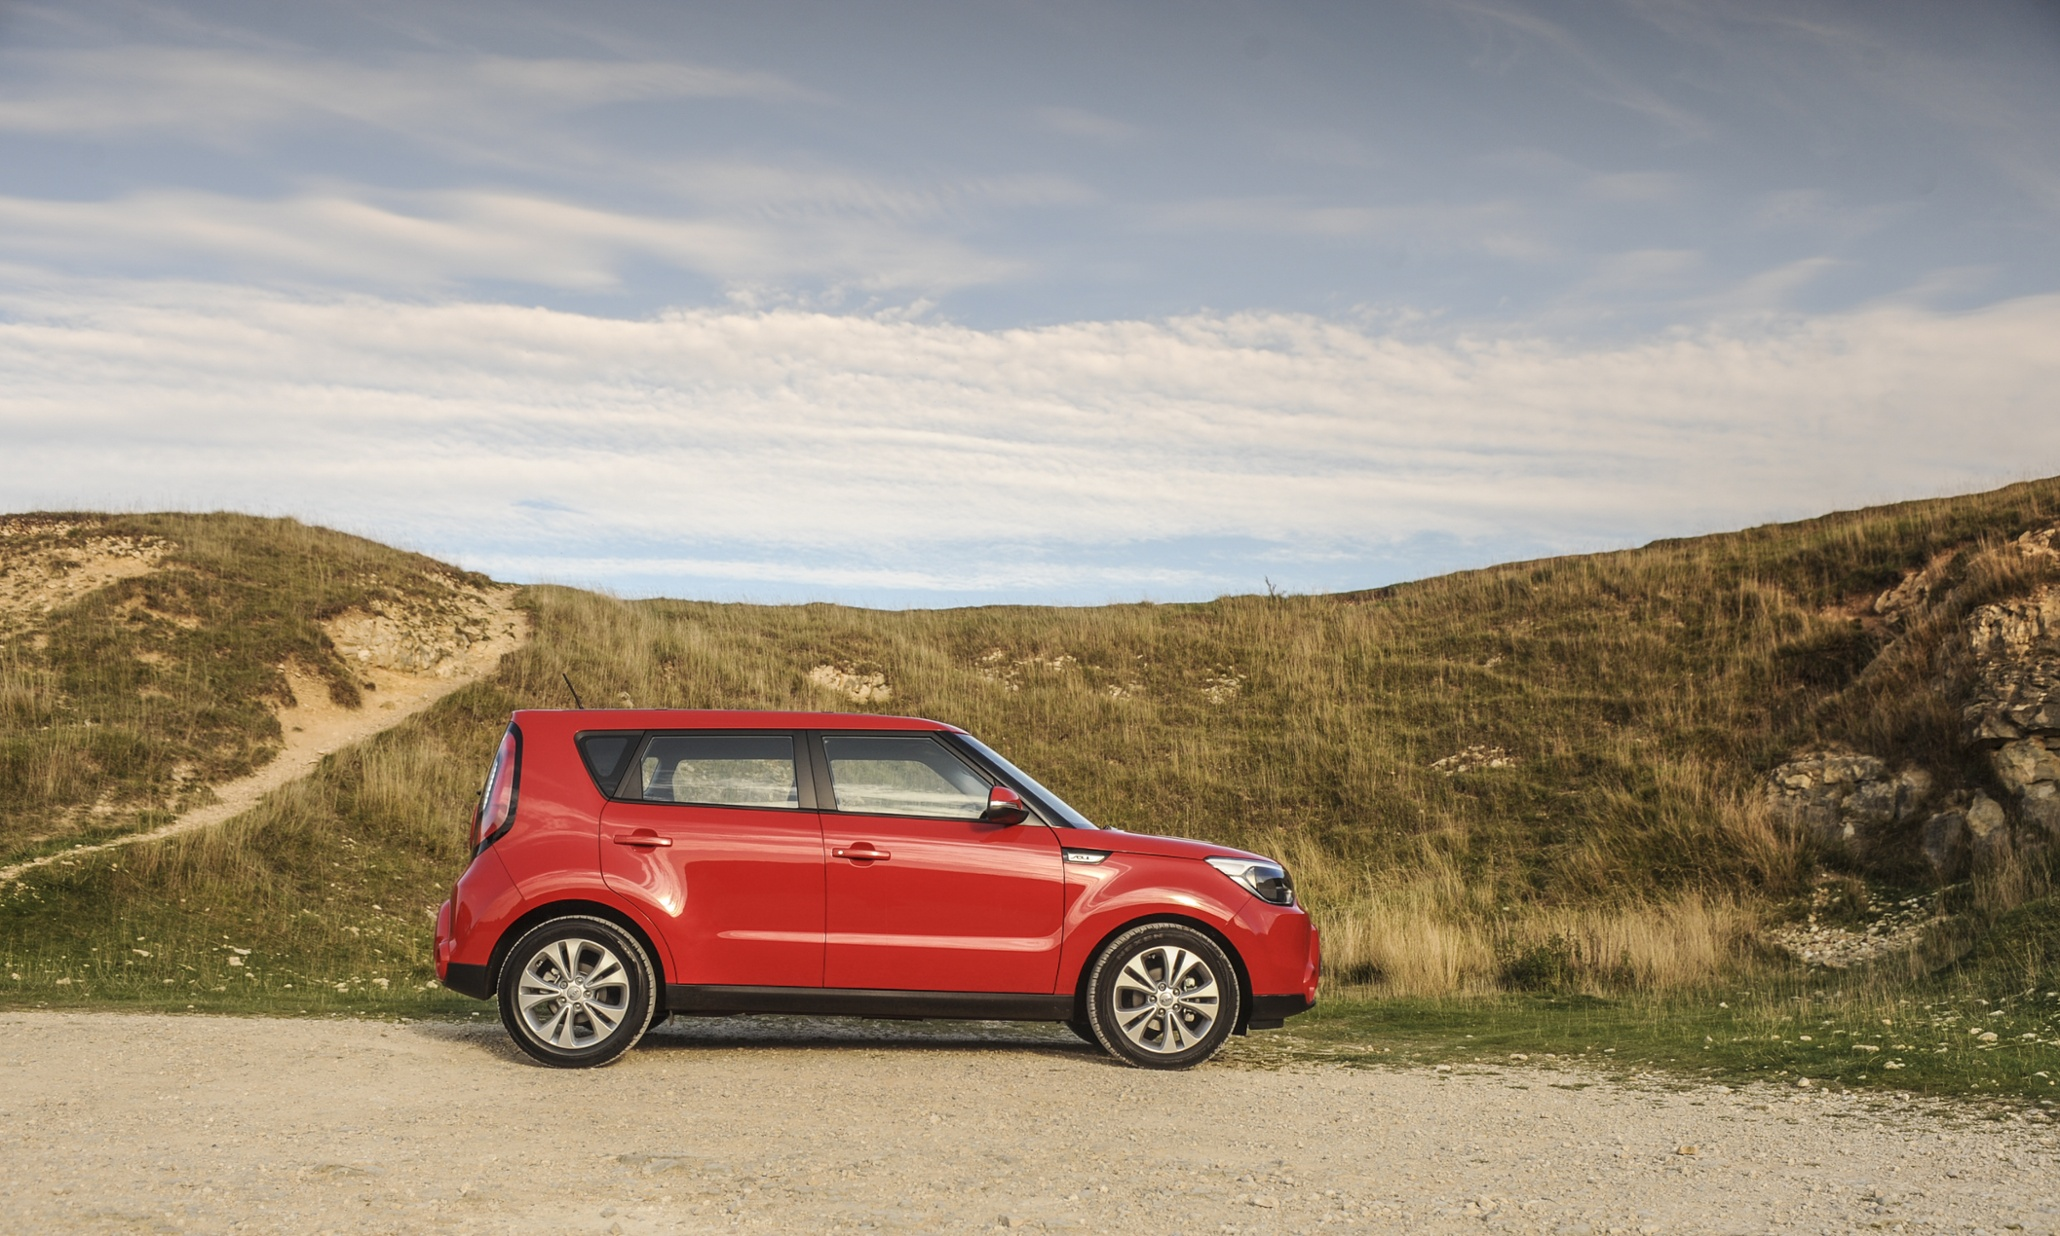 On the road: Kia Soul – car review